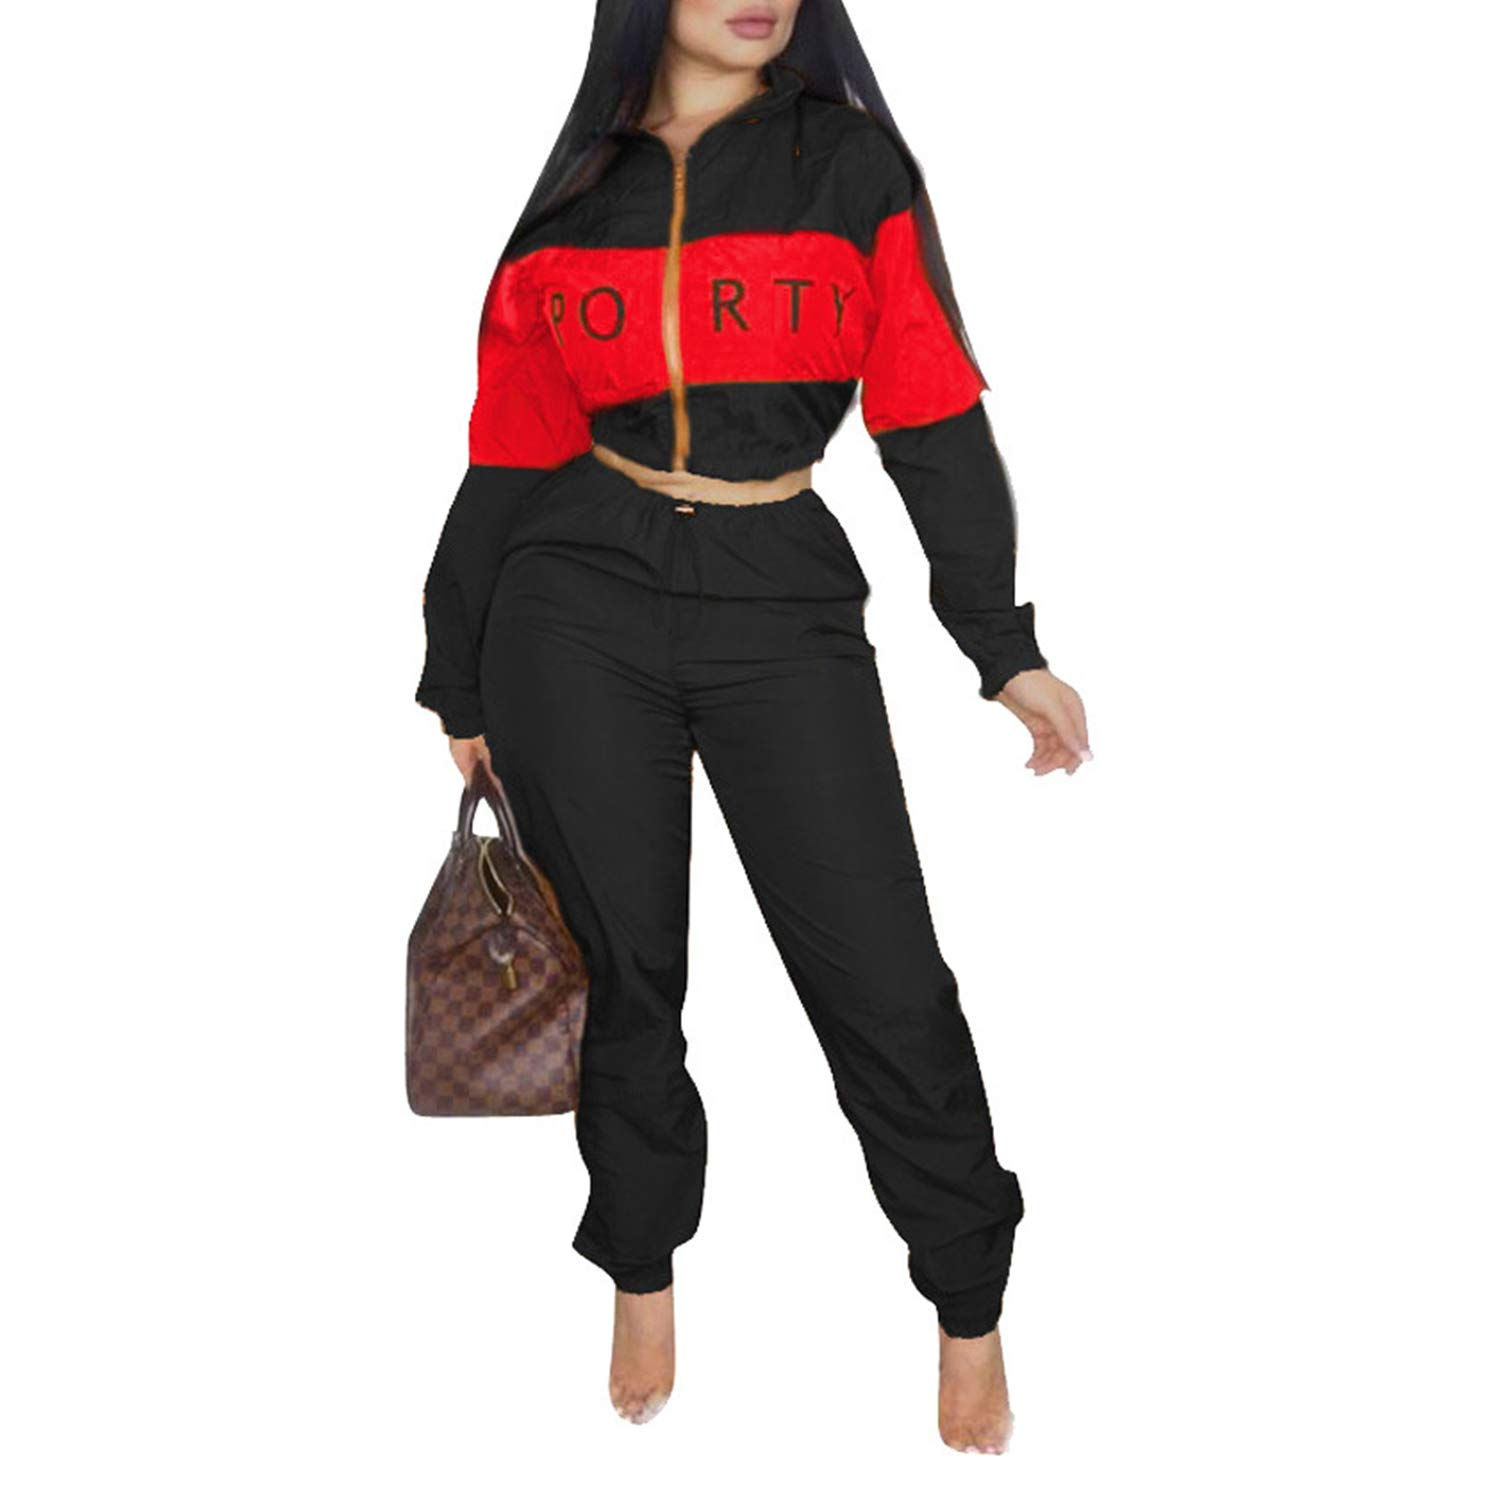 Casual Sweatsuit Crop Tops Long Sleeves Jacket High Waisted Pants Letter Black XL by Sherro